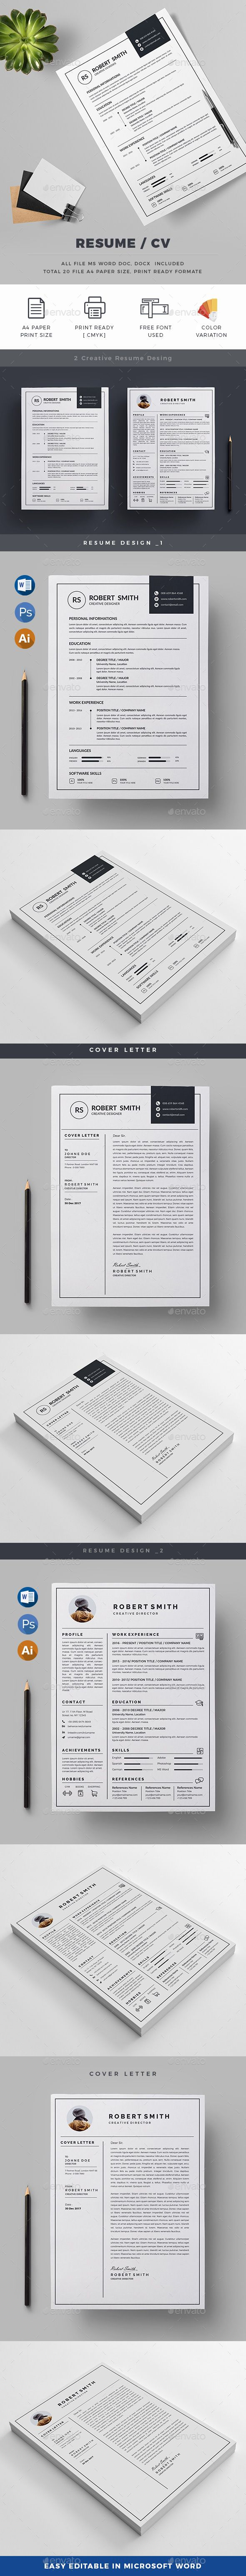 207 best Resume Templates images on Pinterest | Charts, Cv design ...